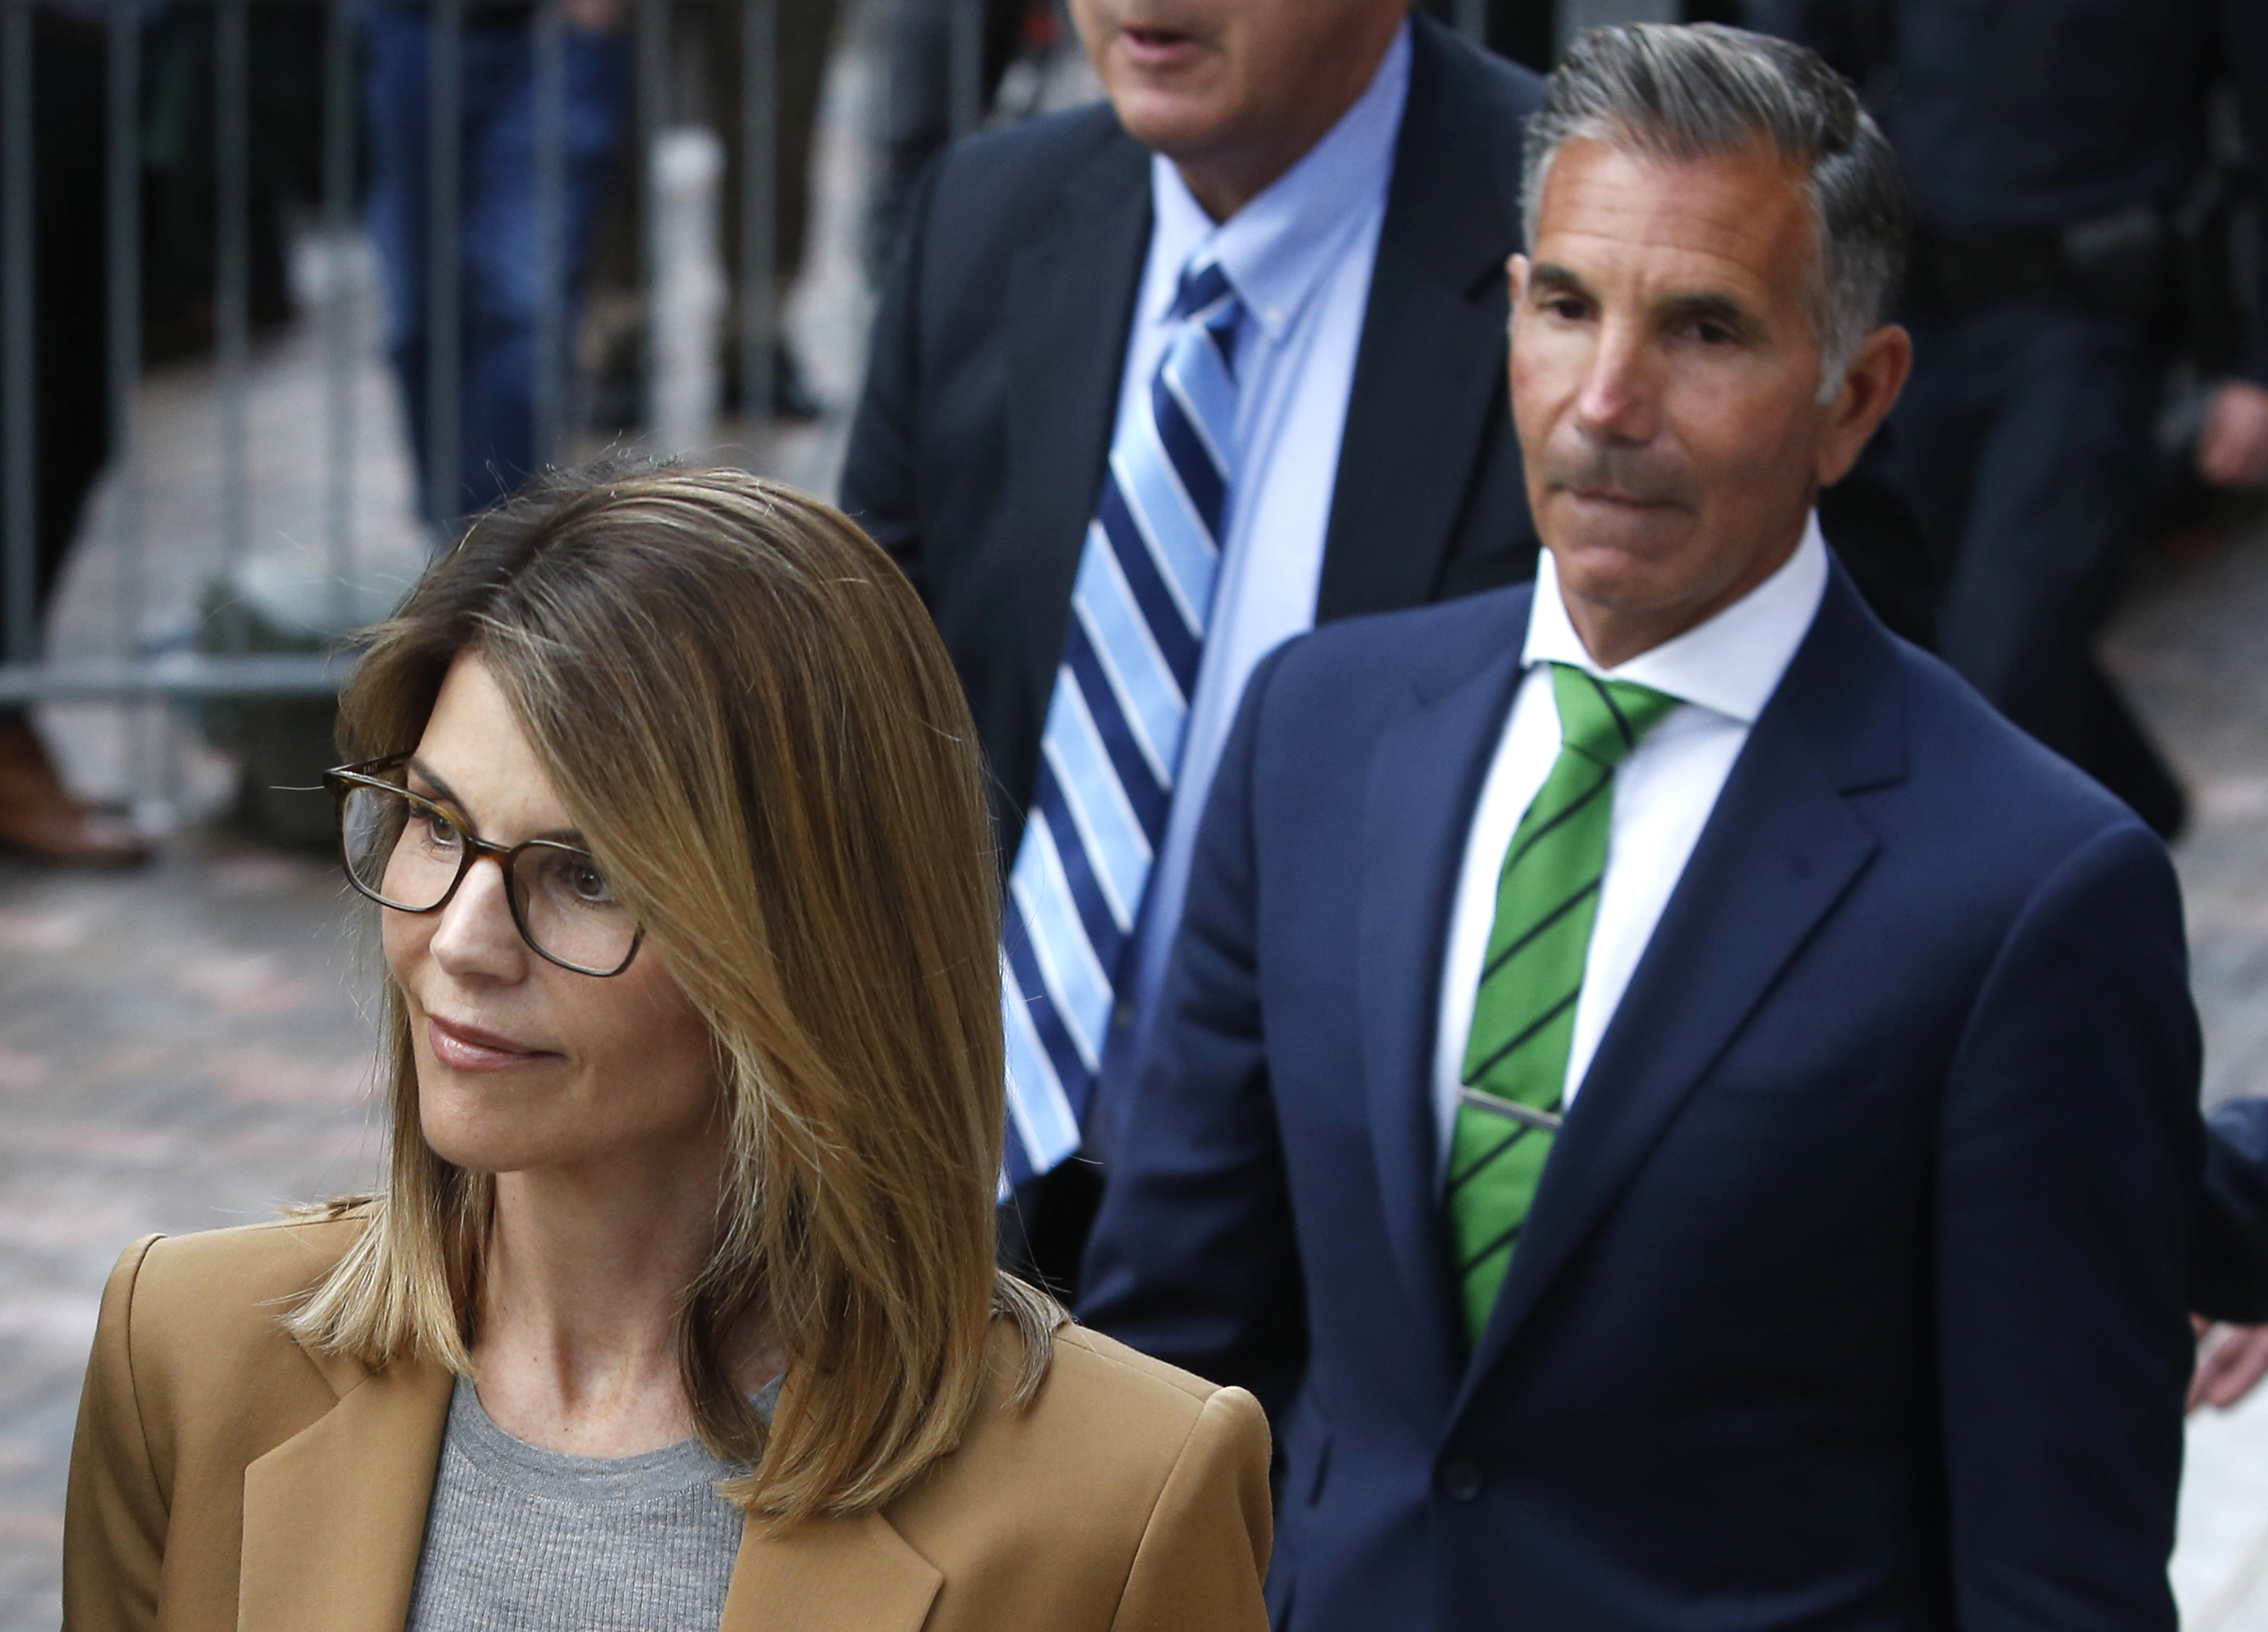 Lori Loughlin and Mossimo Giannulli Appear in Boston Court